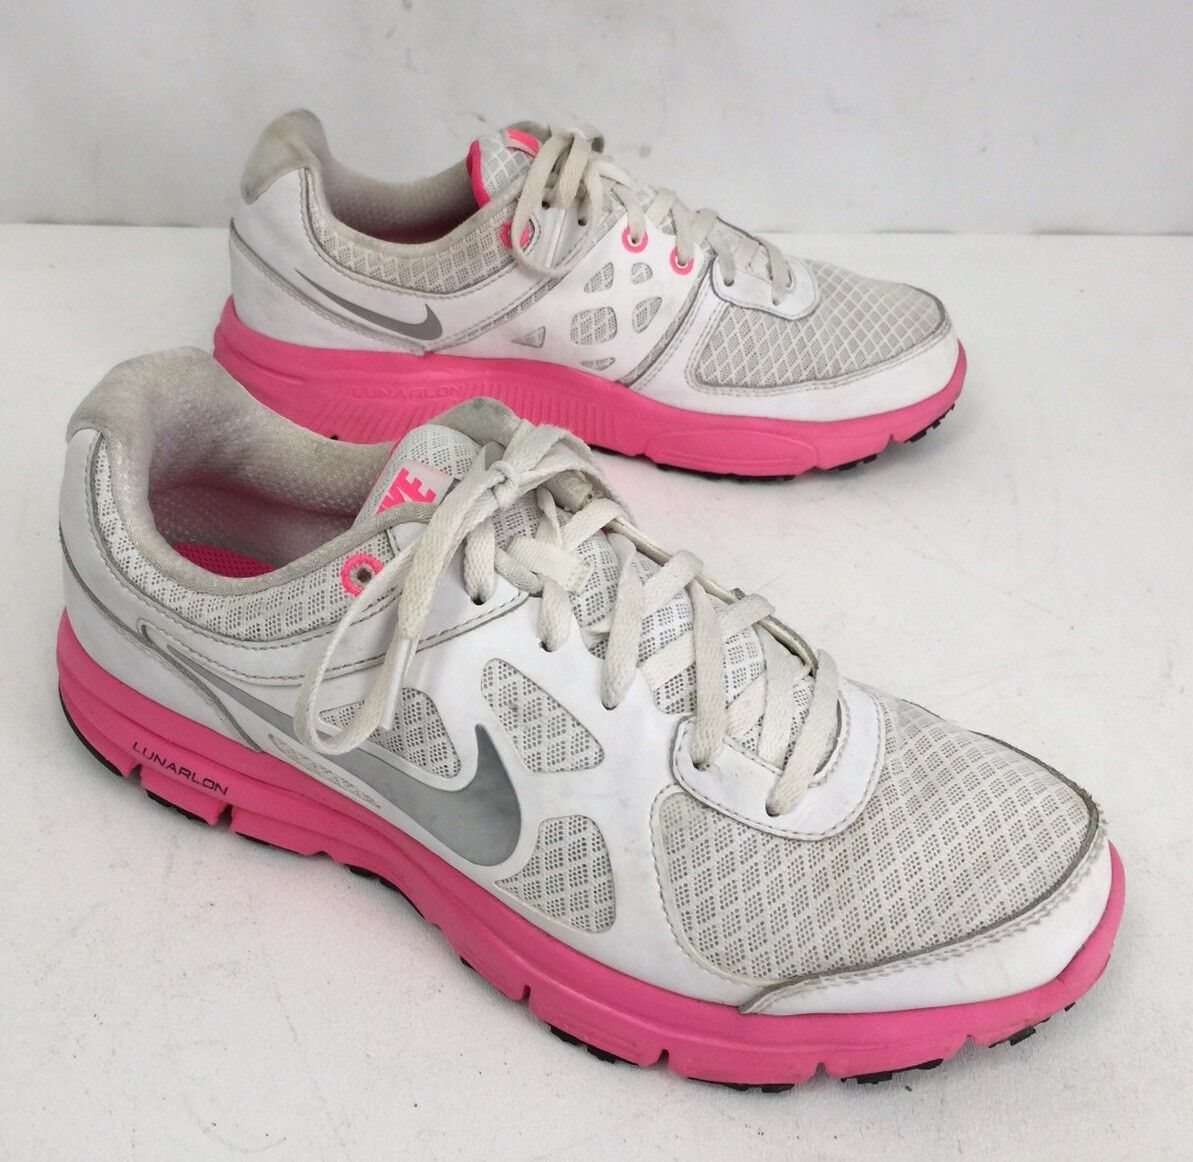 Nike Lunar Forever White/Pink Sz 9 Women Running Shoes Sneakers In EUC The latest discount shoes for men and women